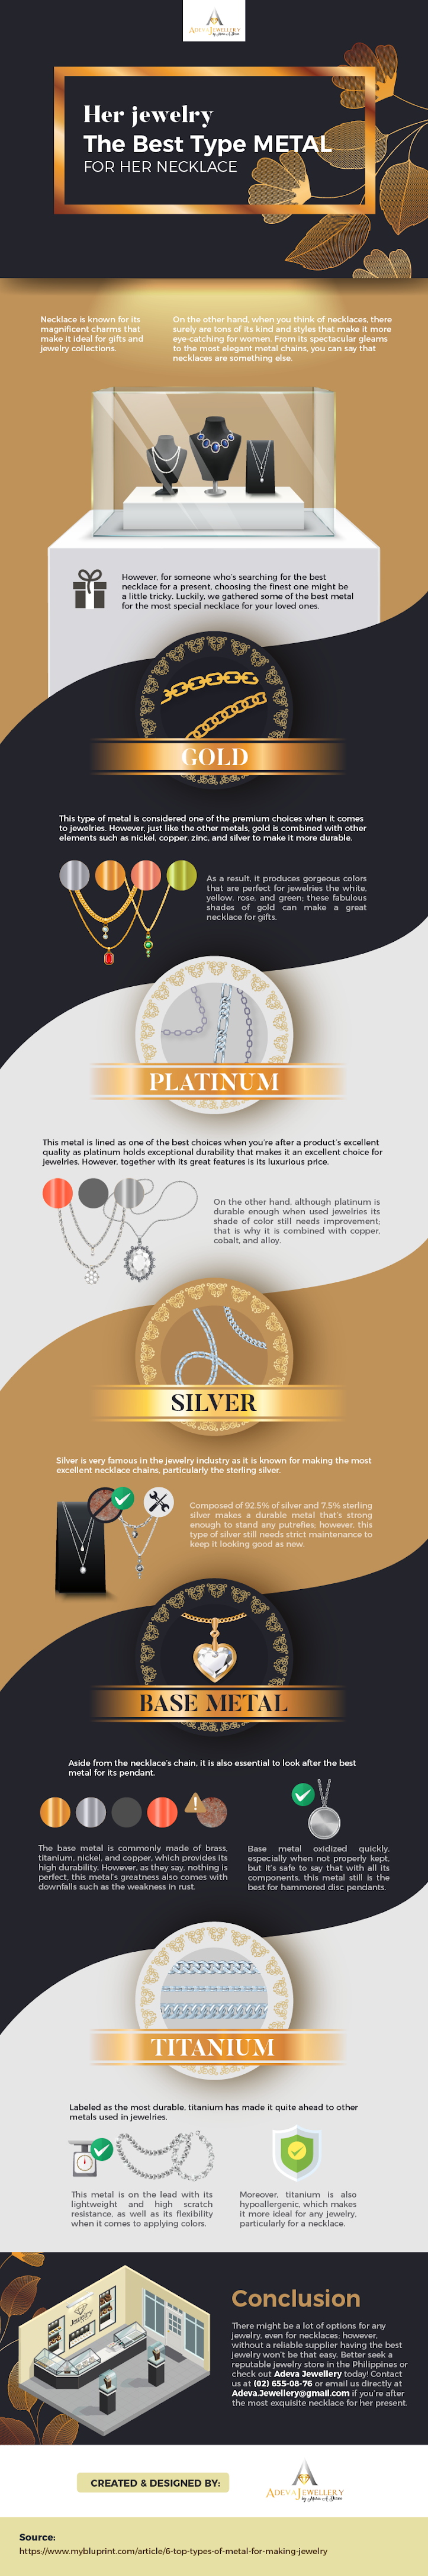 Her Jewelry The Best Metal for Her Necklace #infographic